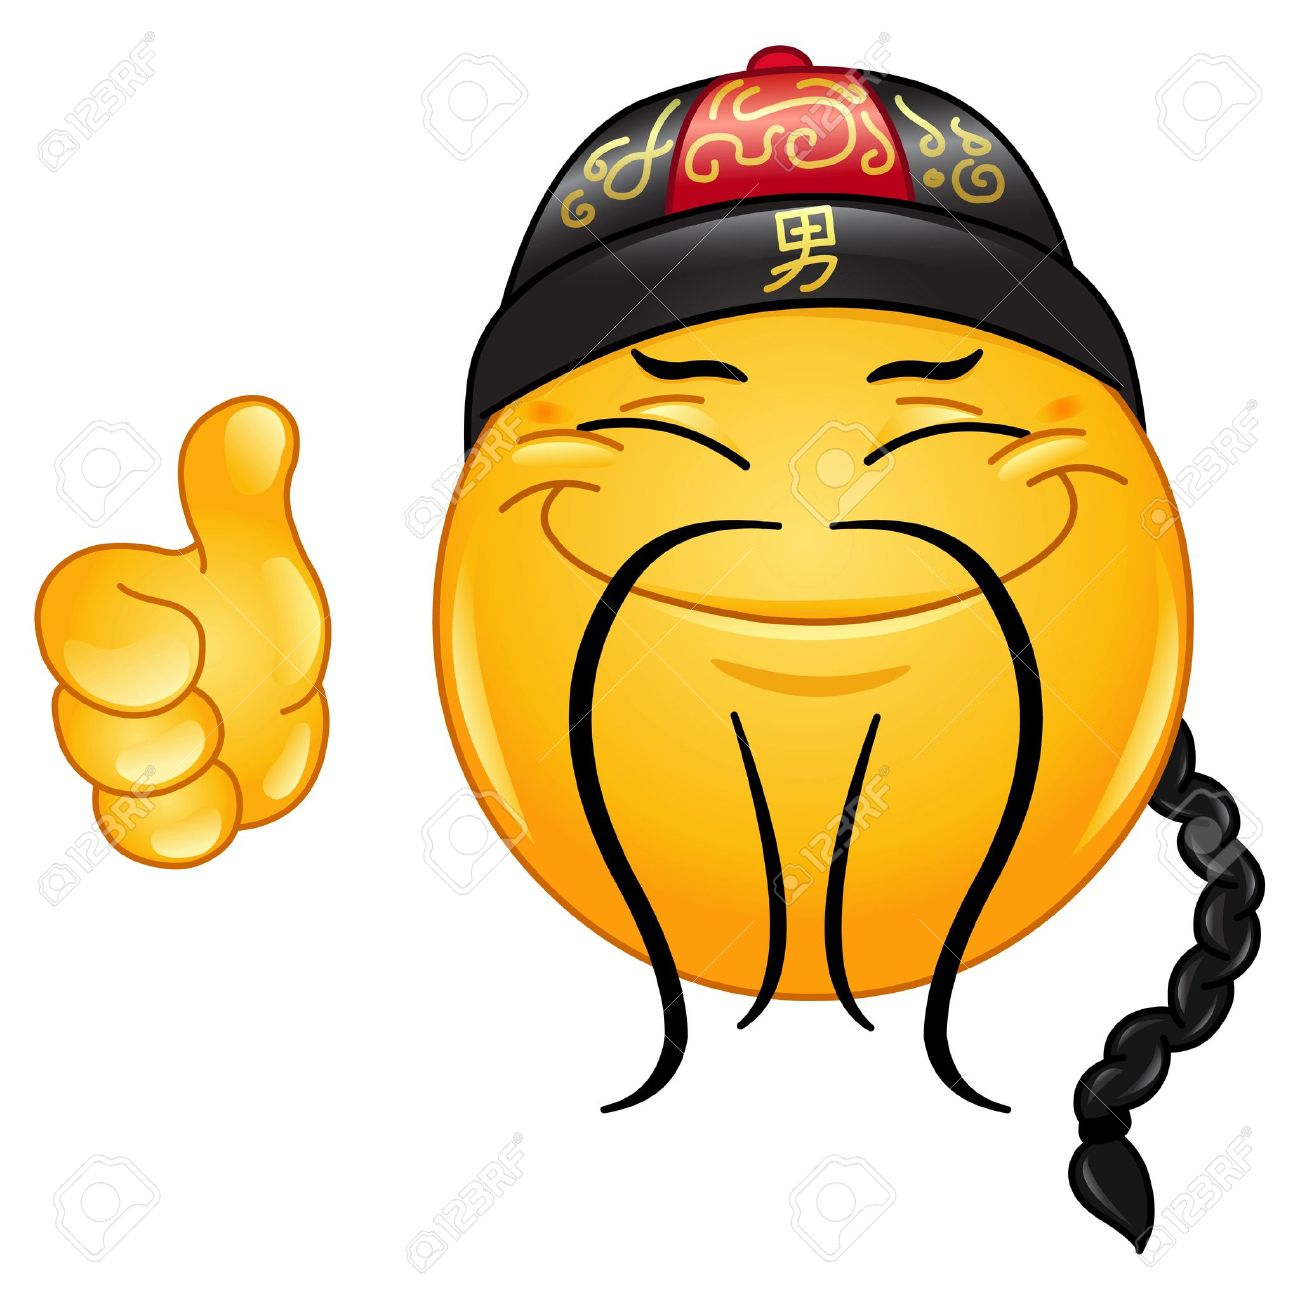 1300x1300 5,667 Thumbs Up Funny Cliparts, Stock Vector And Royalty Free